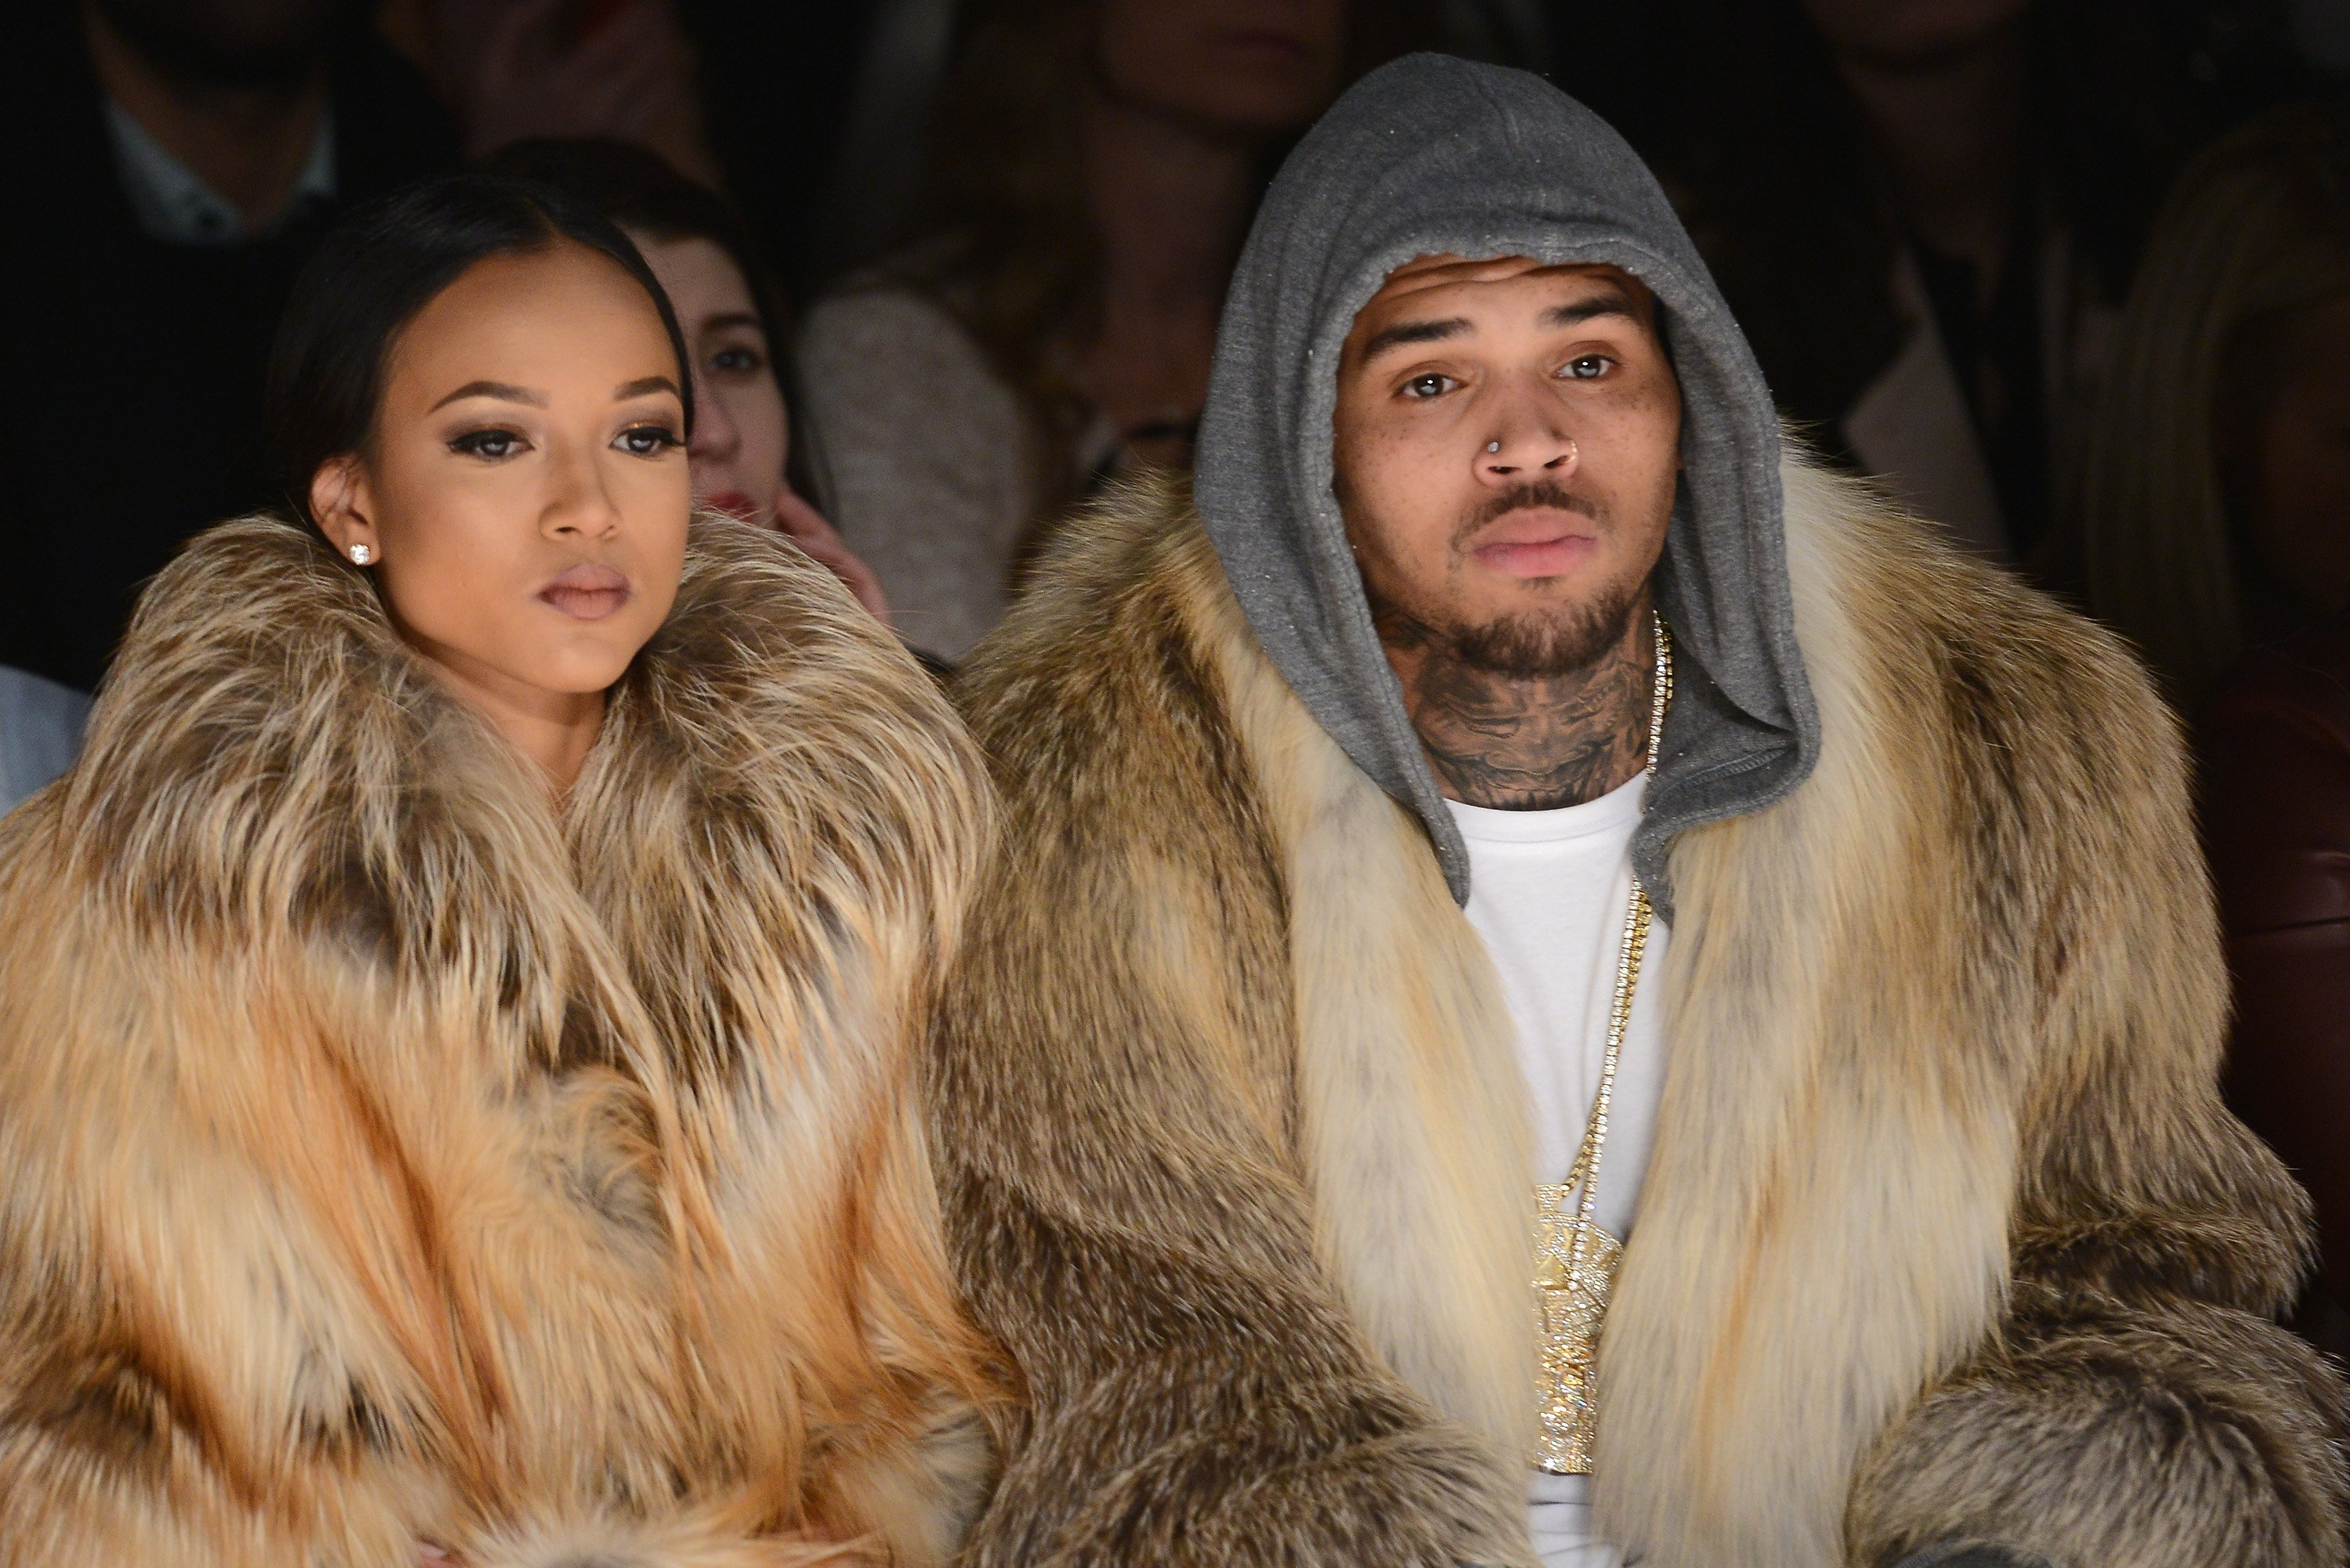 Karrueche Tran  and Chris Brown attends the Michael Costello fashion show during Mercedes-Benz Fashion Week Fall 2015 at The Salon at Lincoln Center on February 17, 2015 in New York City | Photo: GettyImages